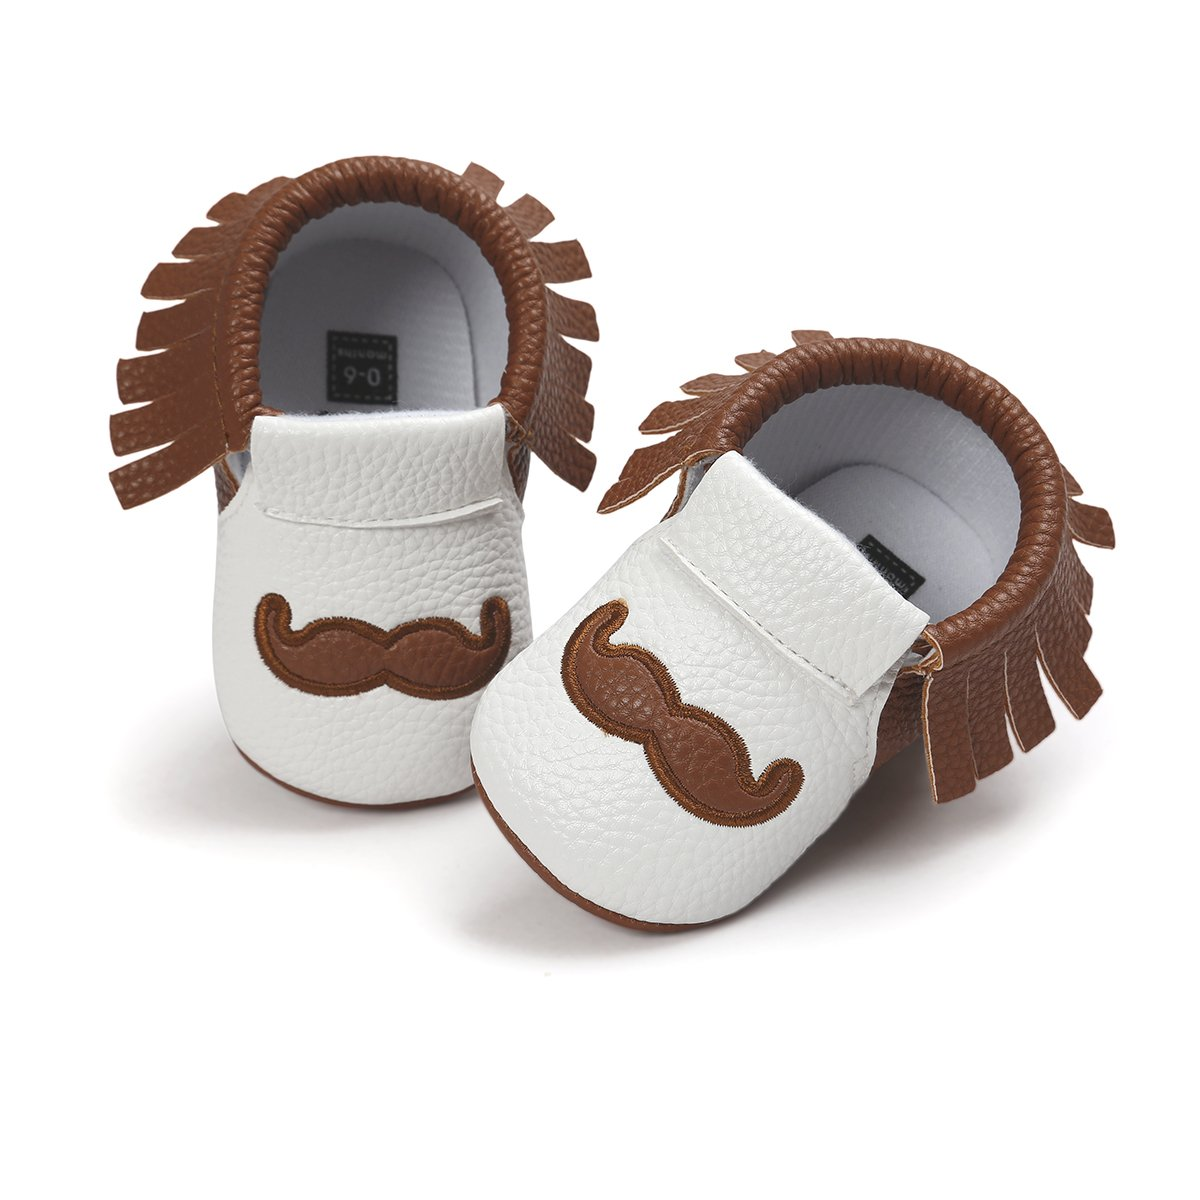 6666cd351f9cb Itaar Baby Moccasins PU Leather Soft Sole Tassel Crib Shoes with Cute  Mustache Print for Infant Toddler Boys Girls